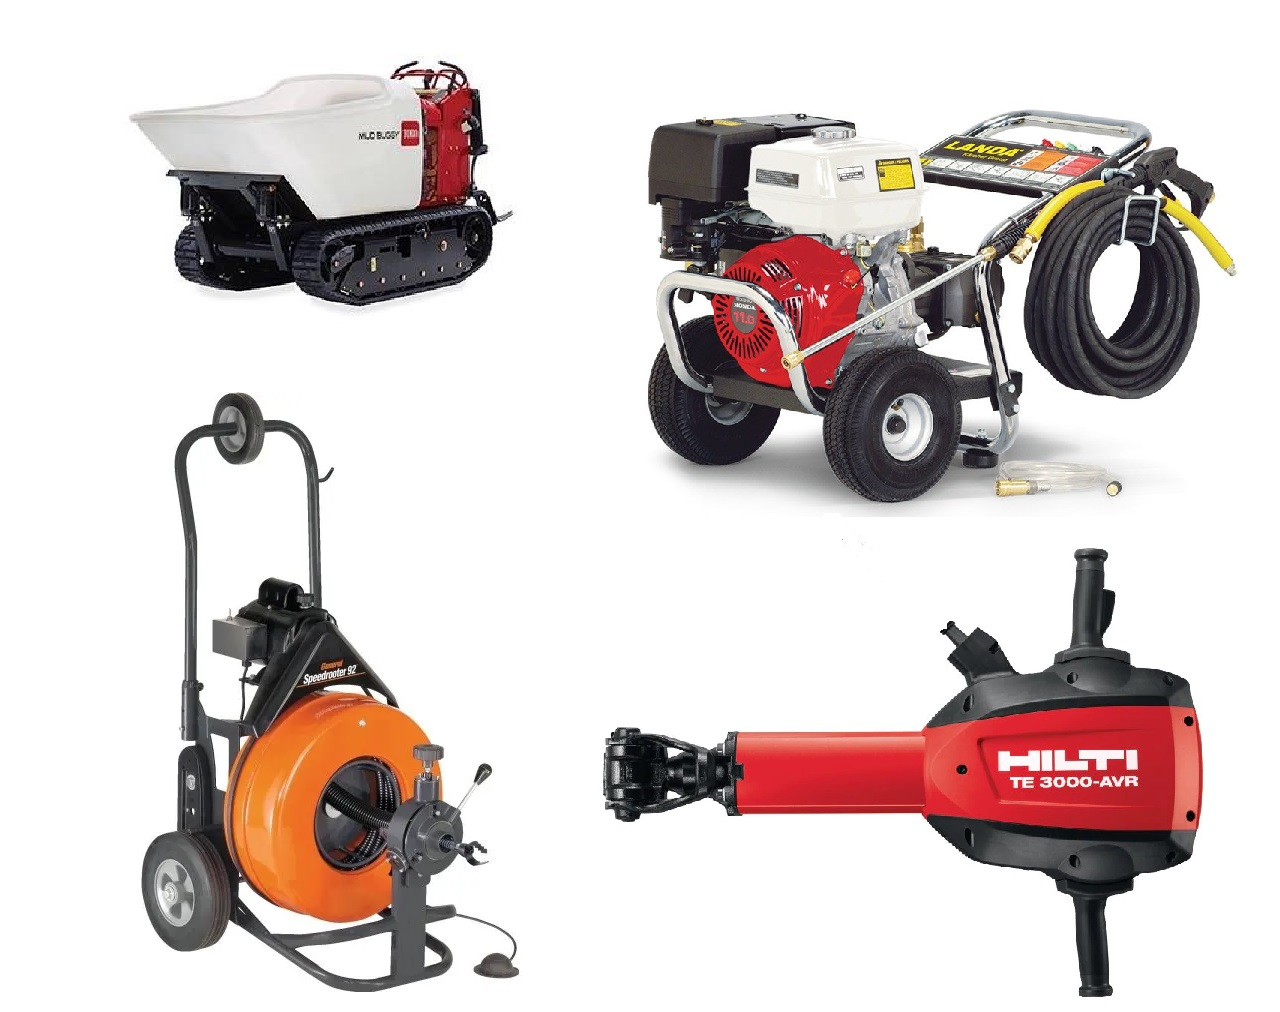 Equipment rentals in Twin Cities Metro Area